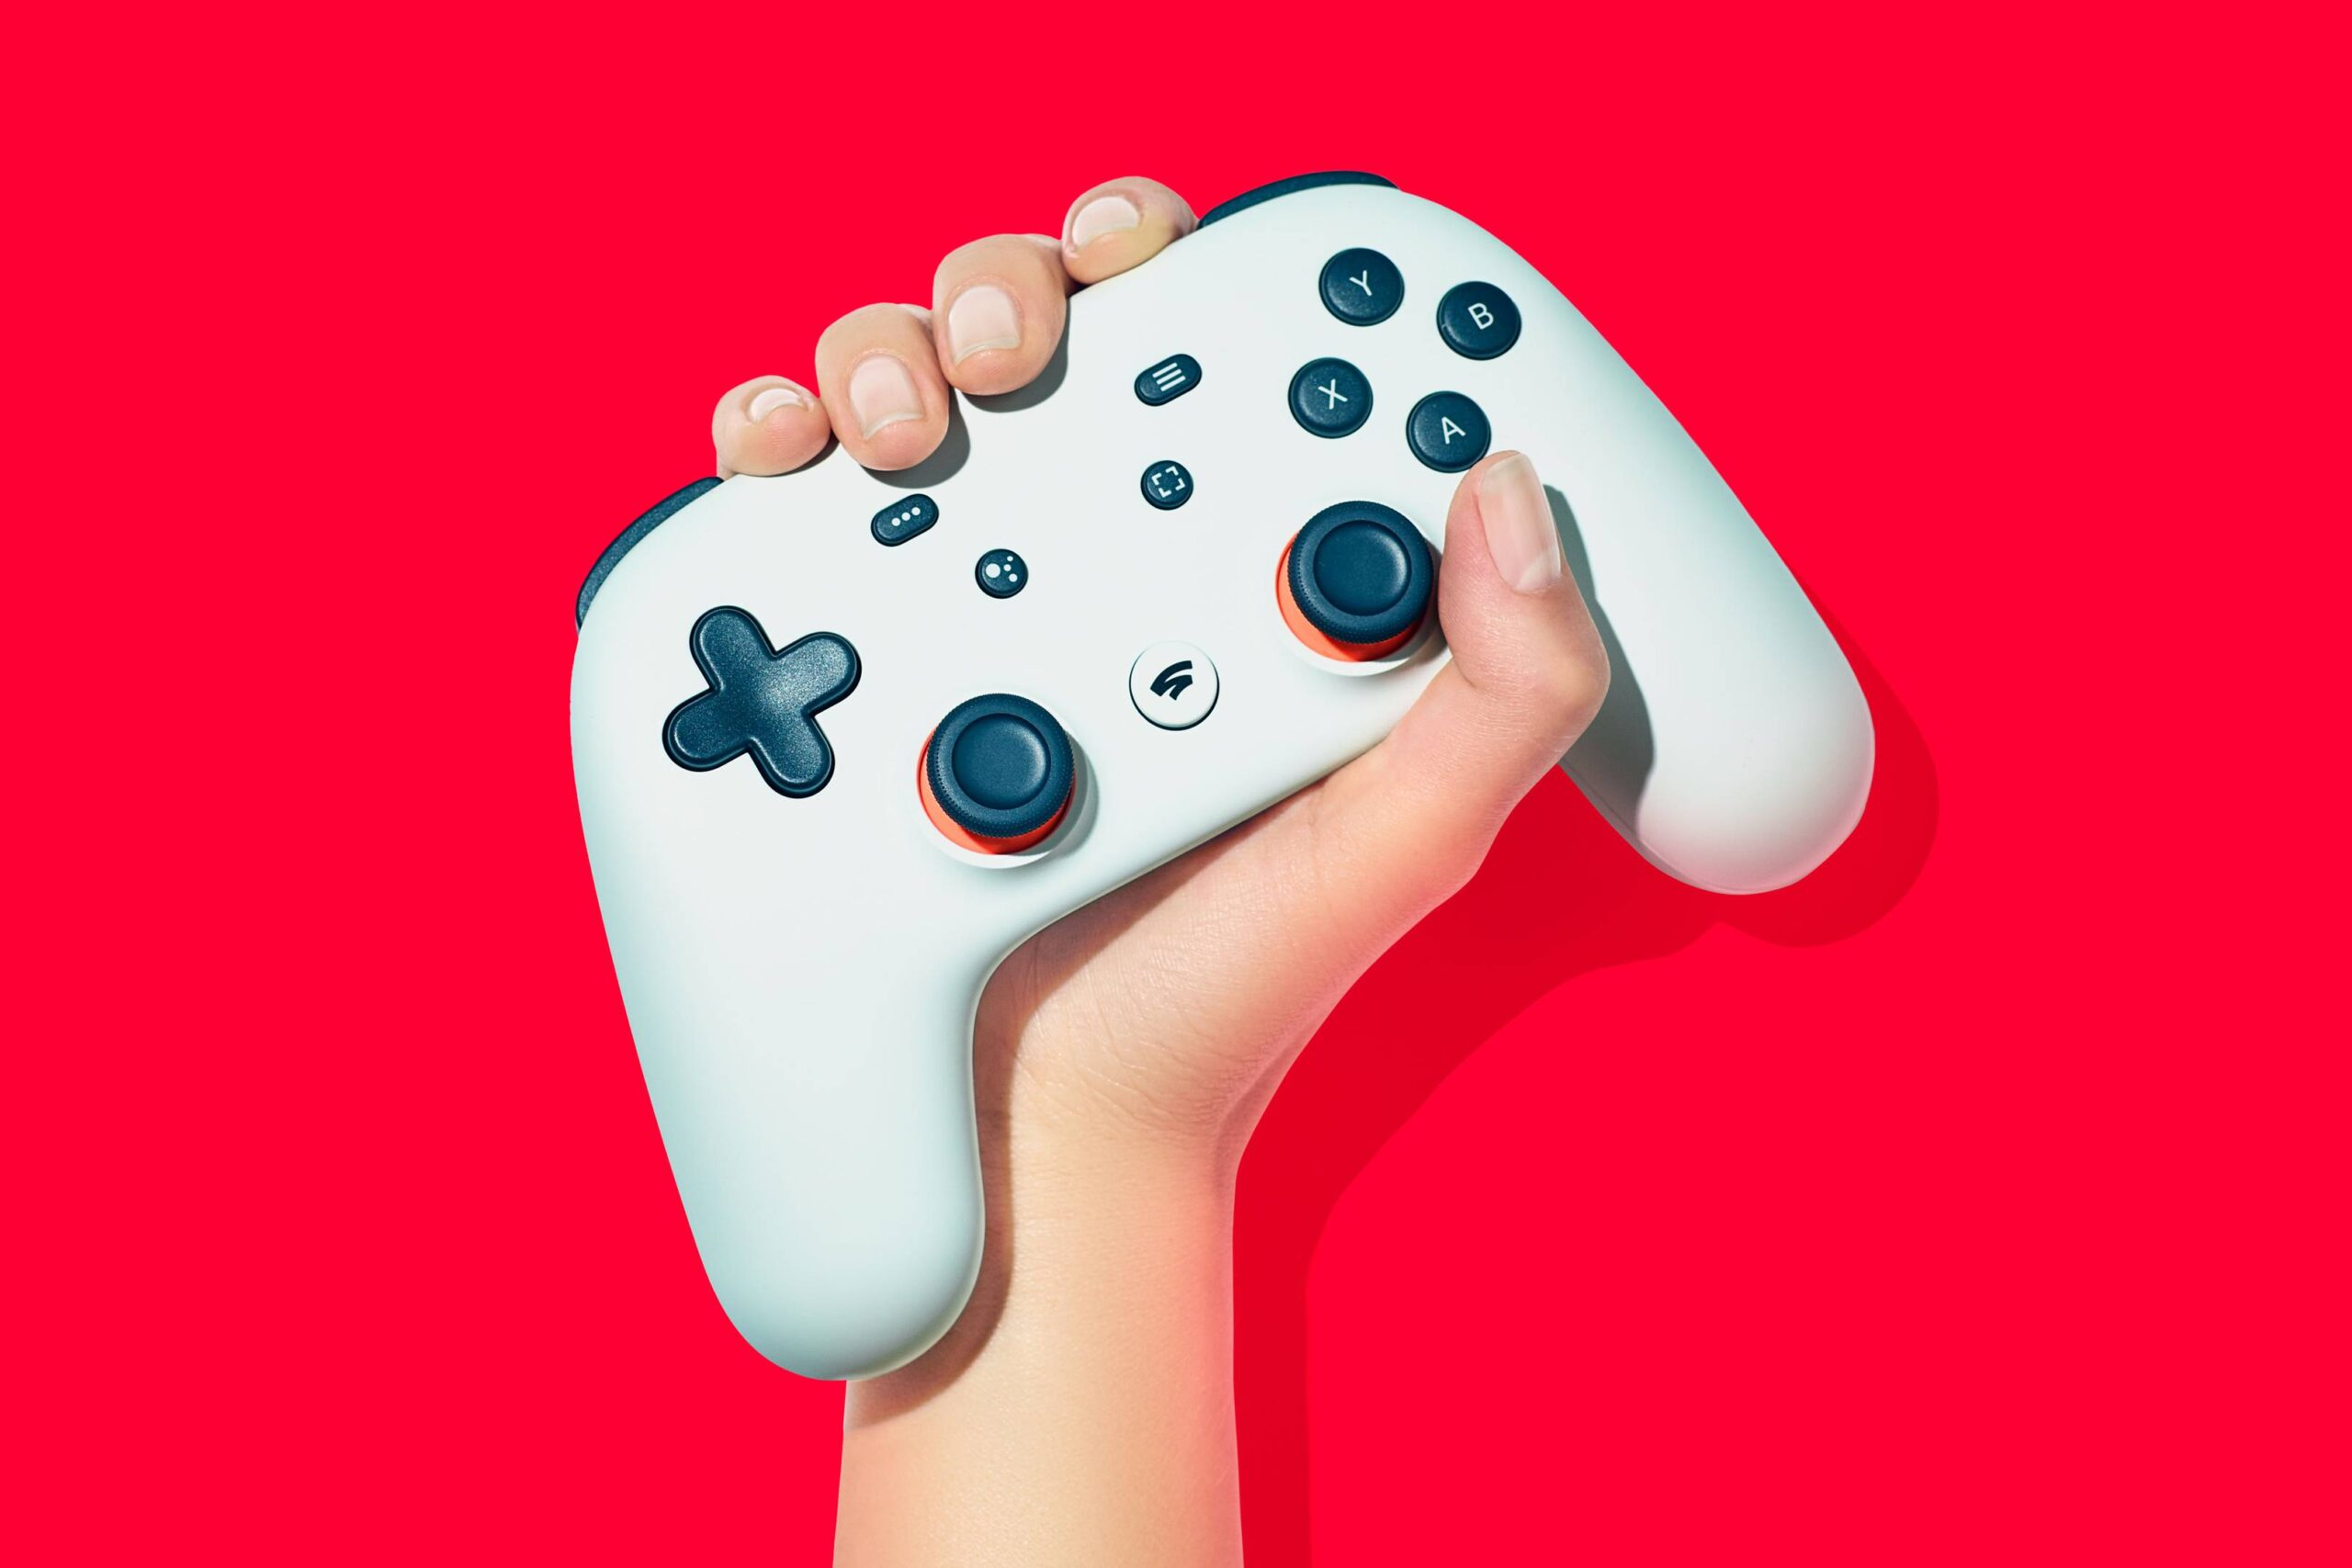 Google's Stadia problem? A video game unit that's not Googley enough